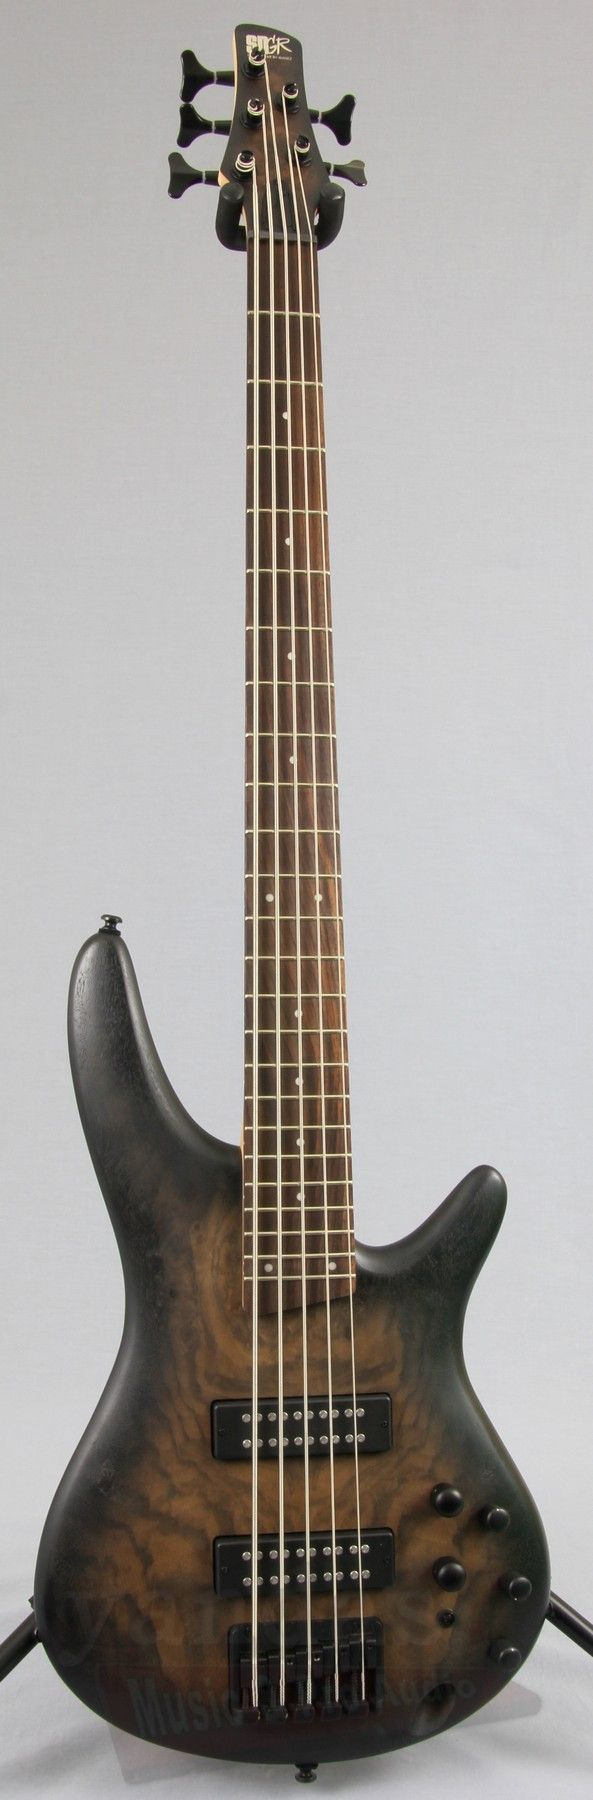 Ibanez SR405EBCW 5-String Bass Guitar - more on www.guitaristica.org #bassguitar #guitars #guitaristica